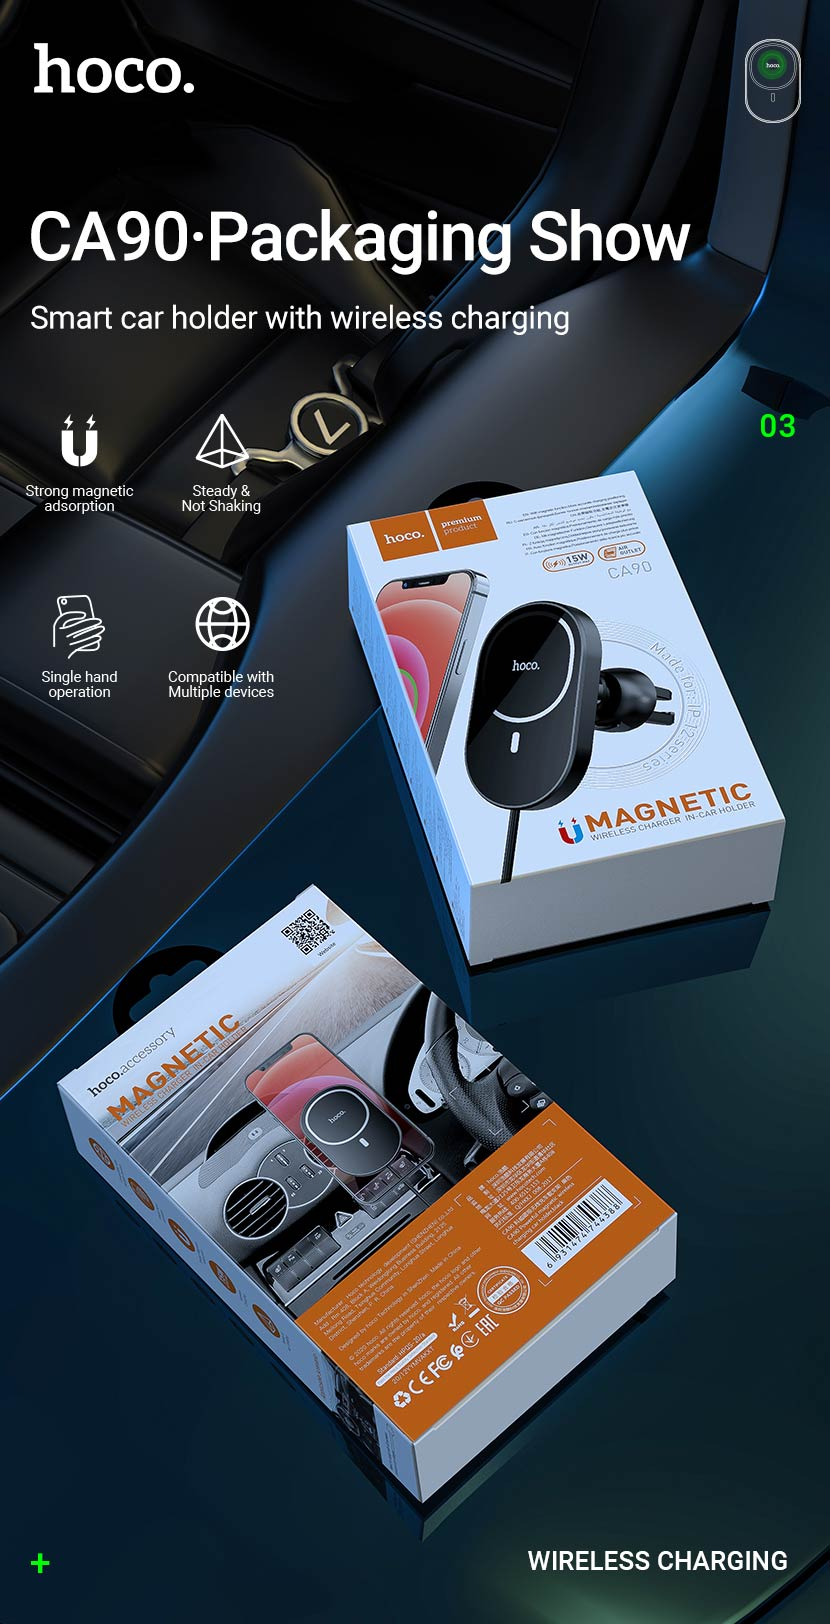 hoco news ca90 powerful magnetic car holder with wireless charging package en